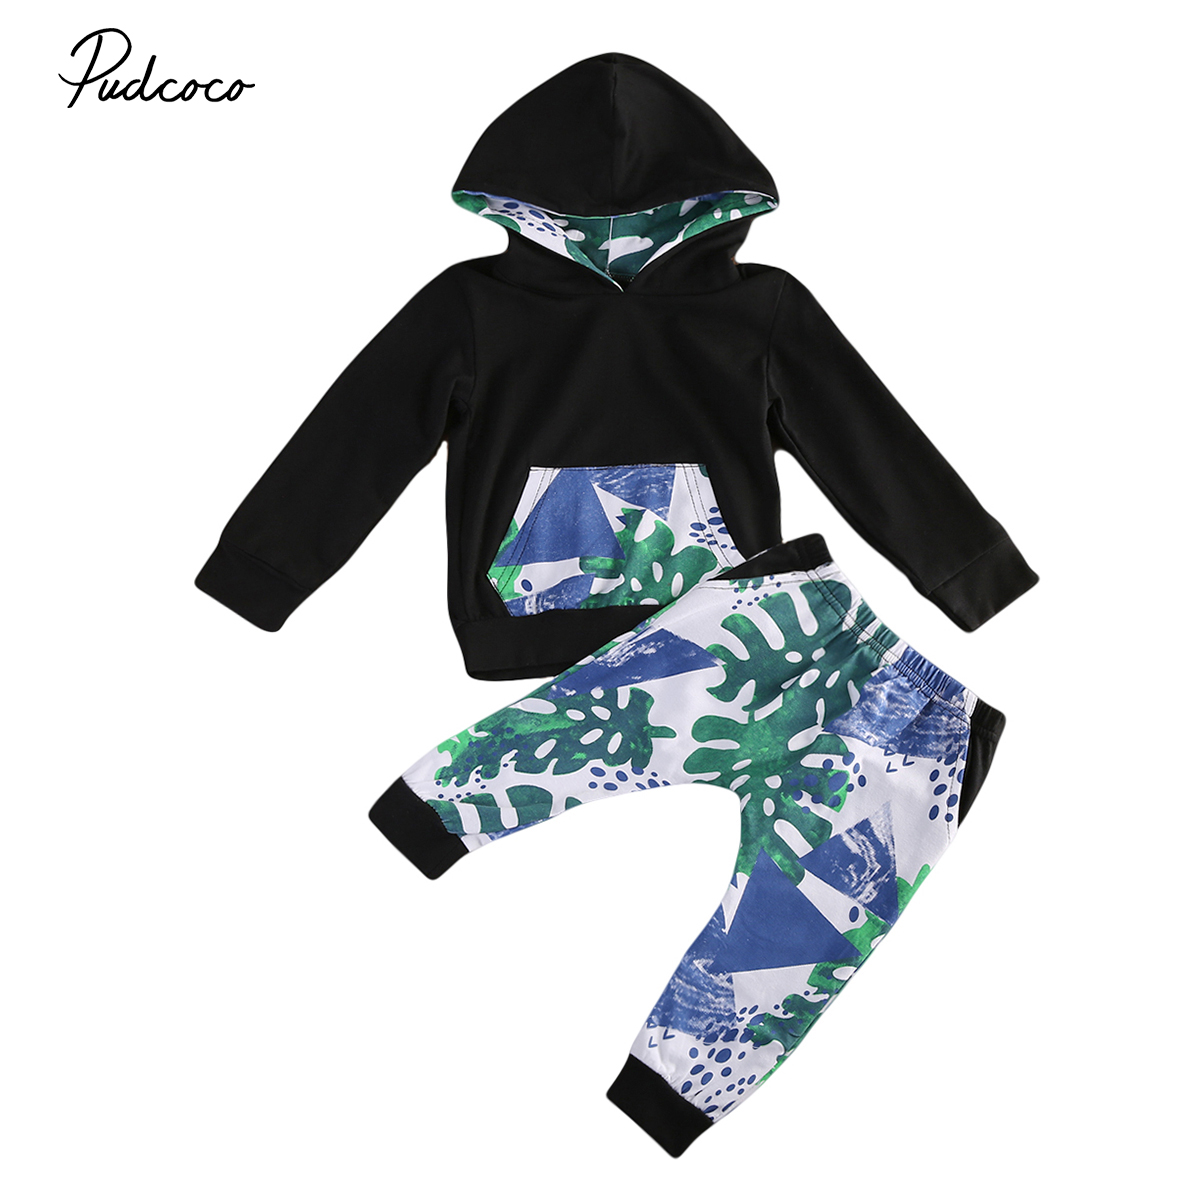 Newbron Toddler Baby Boys Hoodie Sweater Tops Long Pants Home Outfits Set Clothes 2Pcs Set